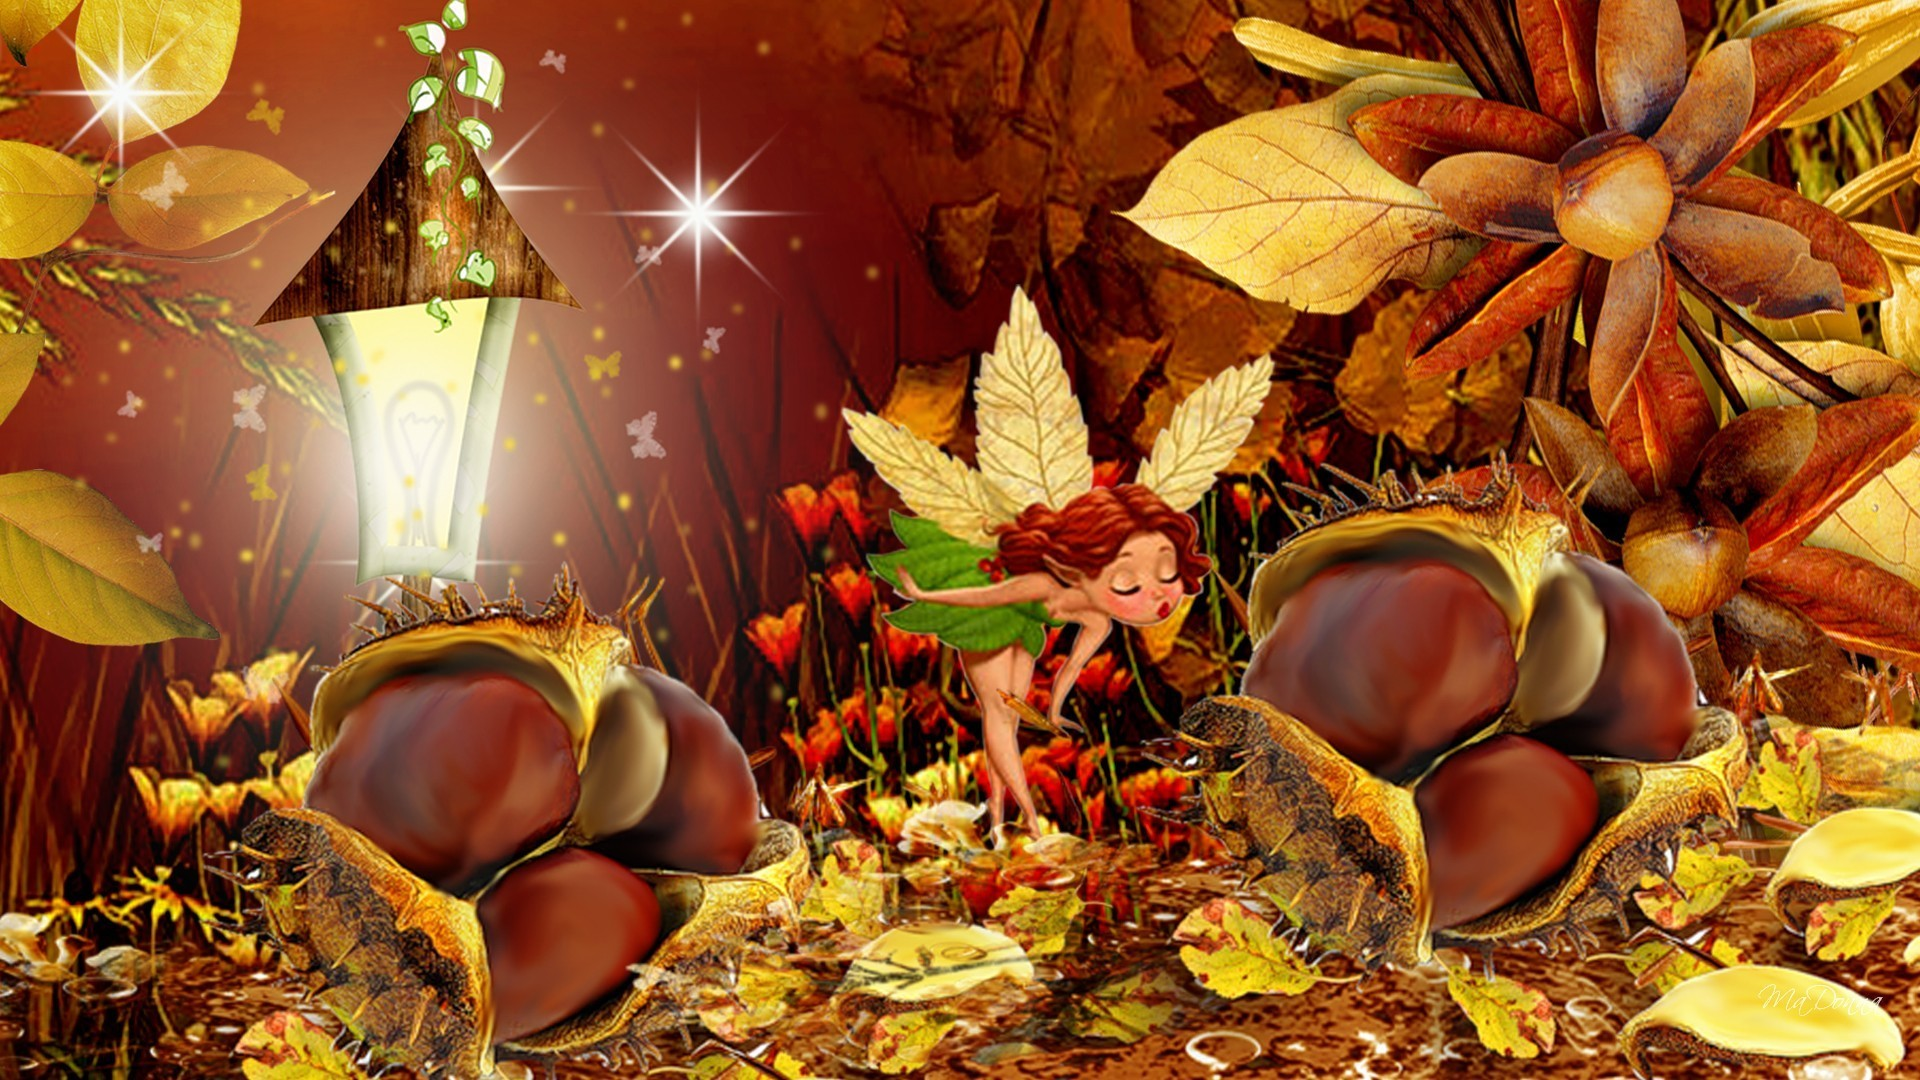 Fall Leaves Live Wallpaper Iphone Fall Flowers Wallpaper 49 Images